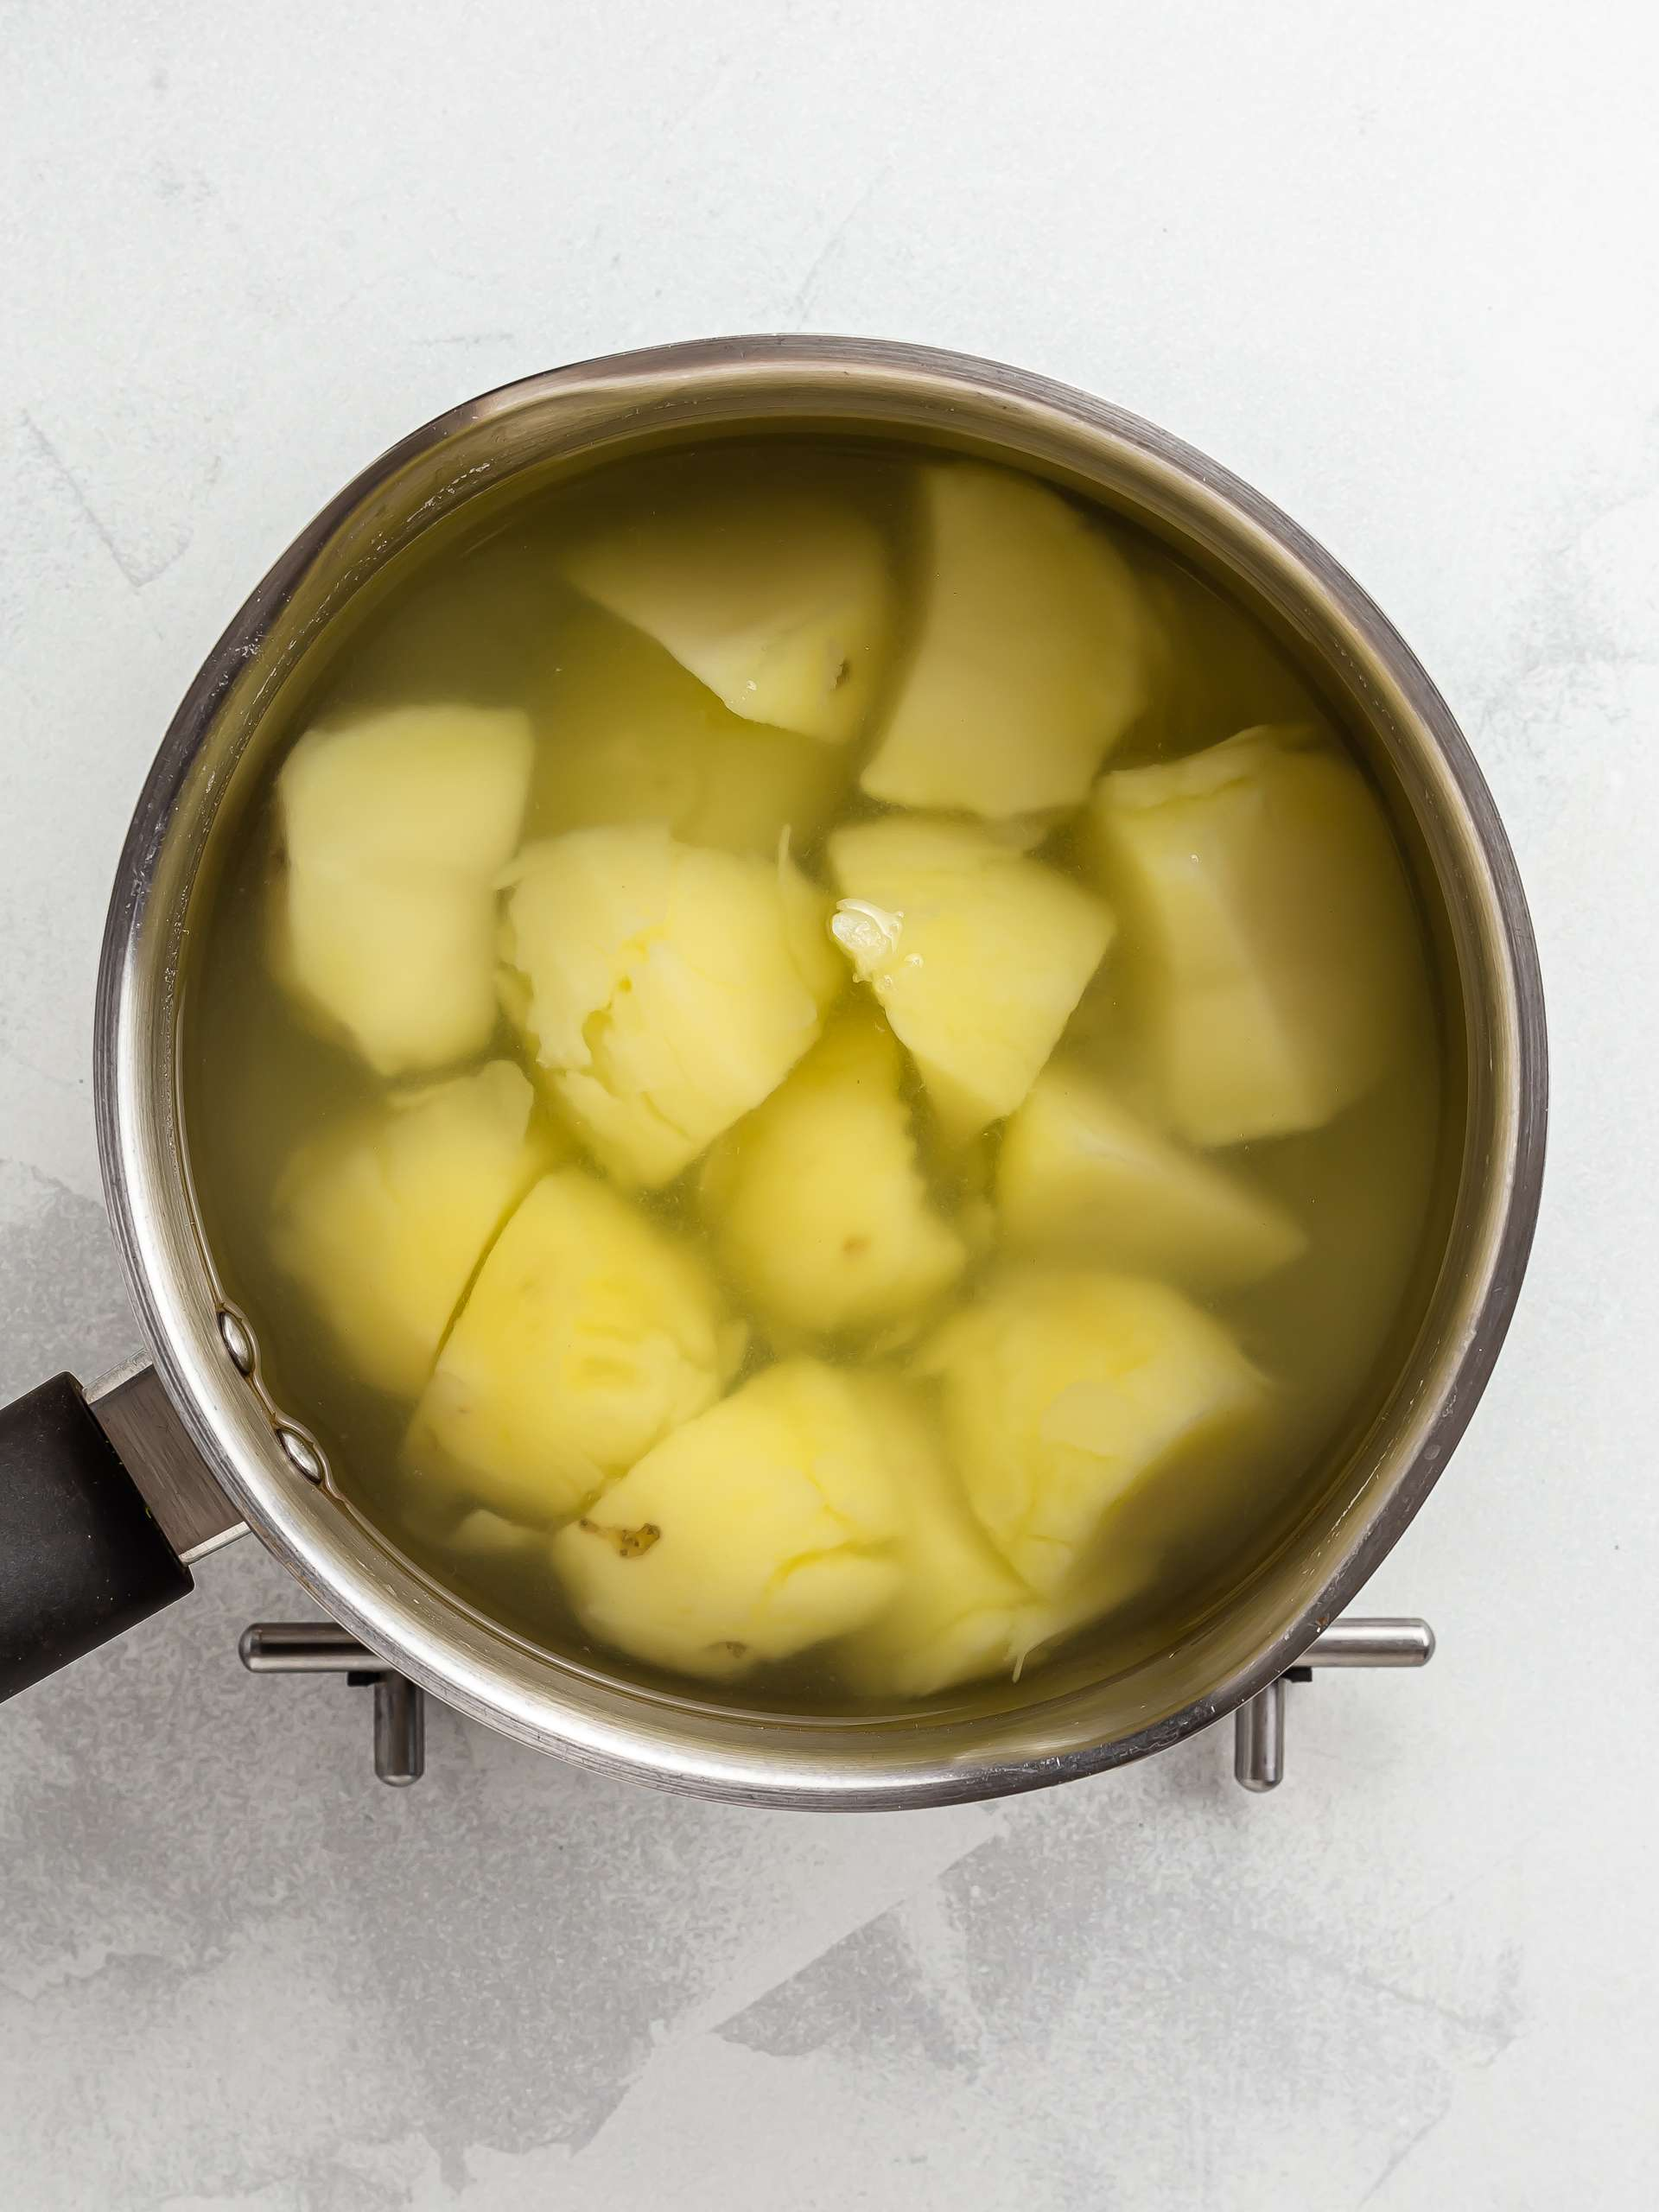 boiled potatoes in a pot